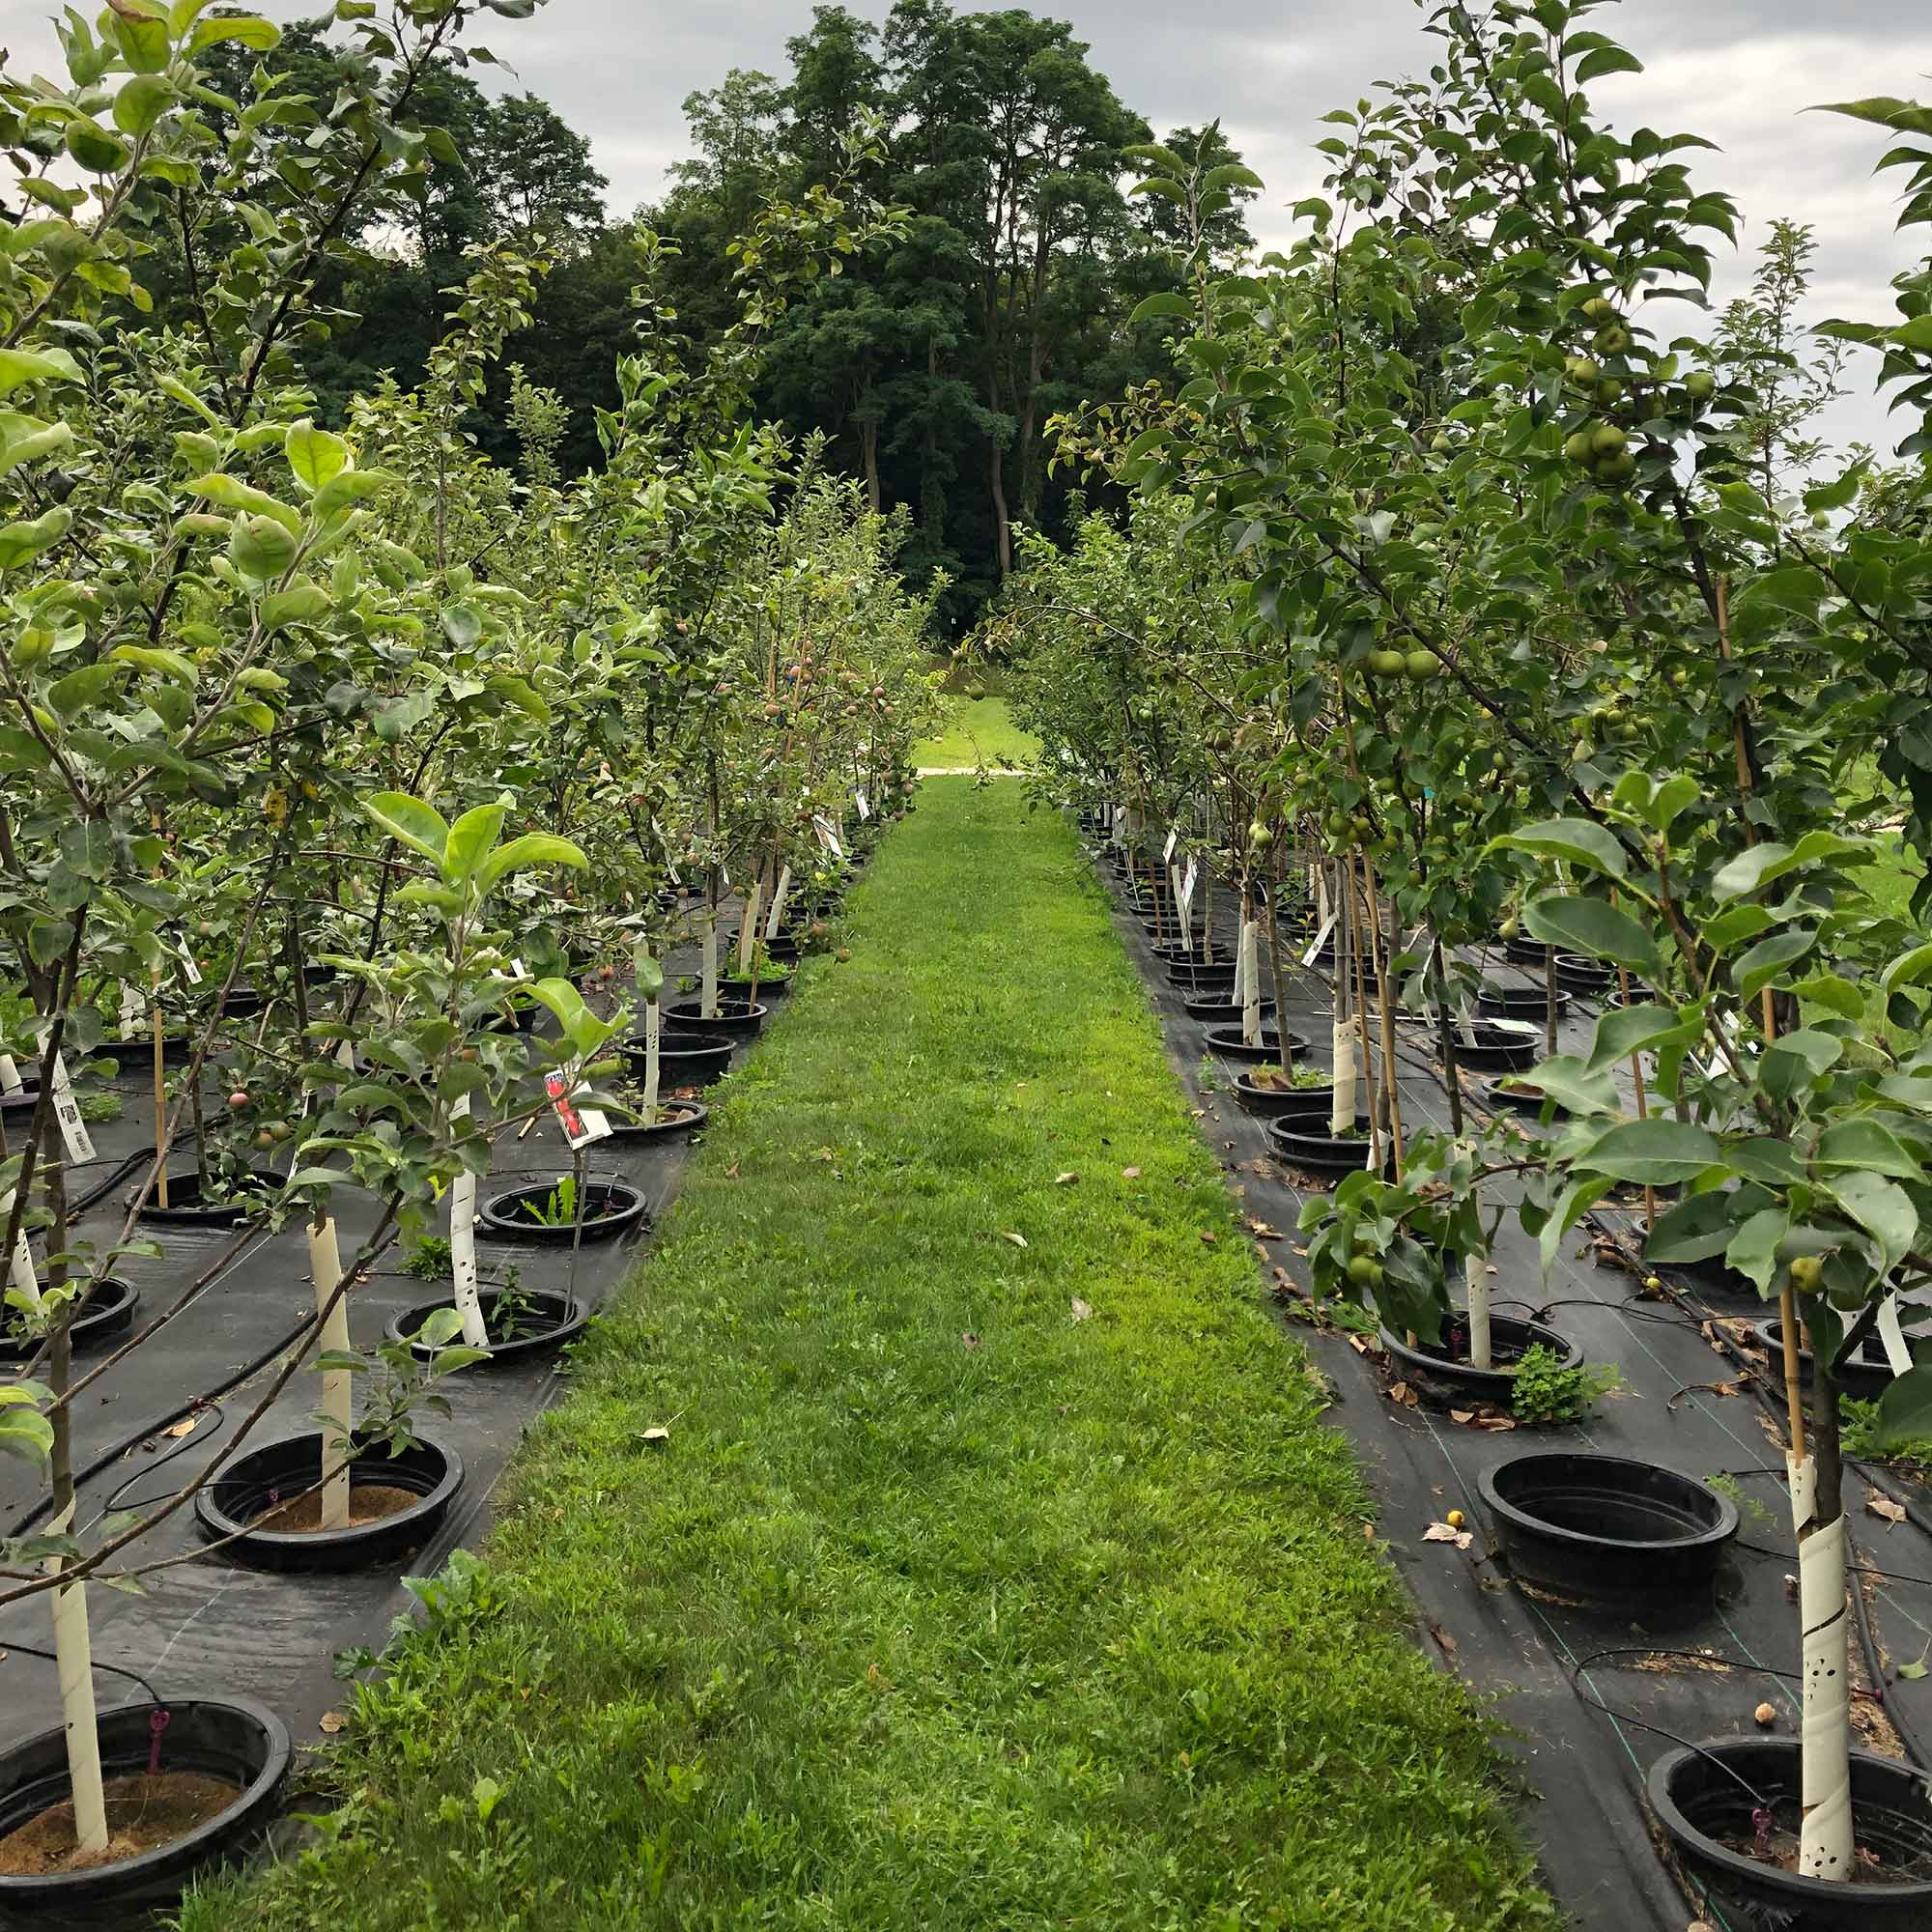 Rows of fruit trees in pot-in-pot growing system